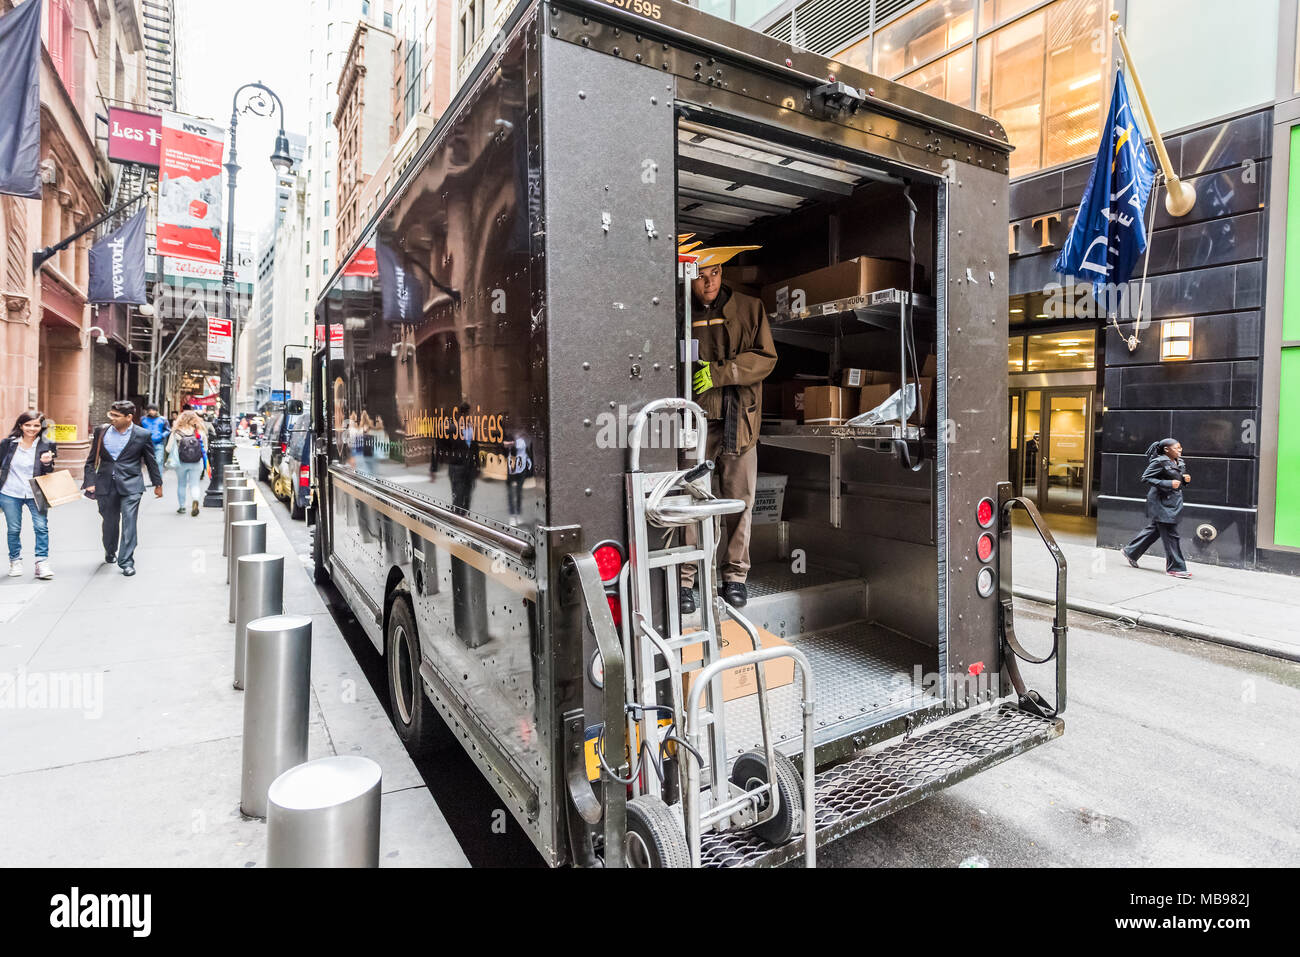 New York City, USA - October 30, 2017: UPS, United Parcel Service, man unloading packages delivery at Broadway St by Wall Street in NYC Manhattan lowe - Stock Image